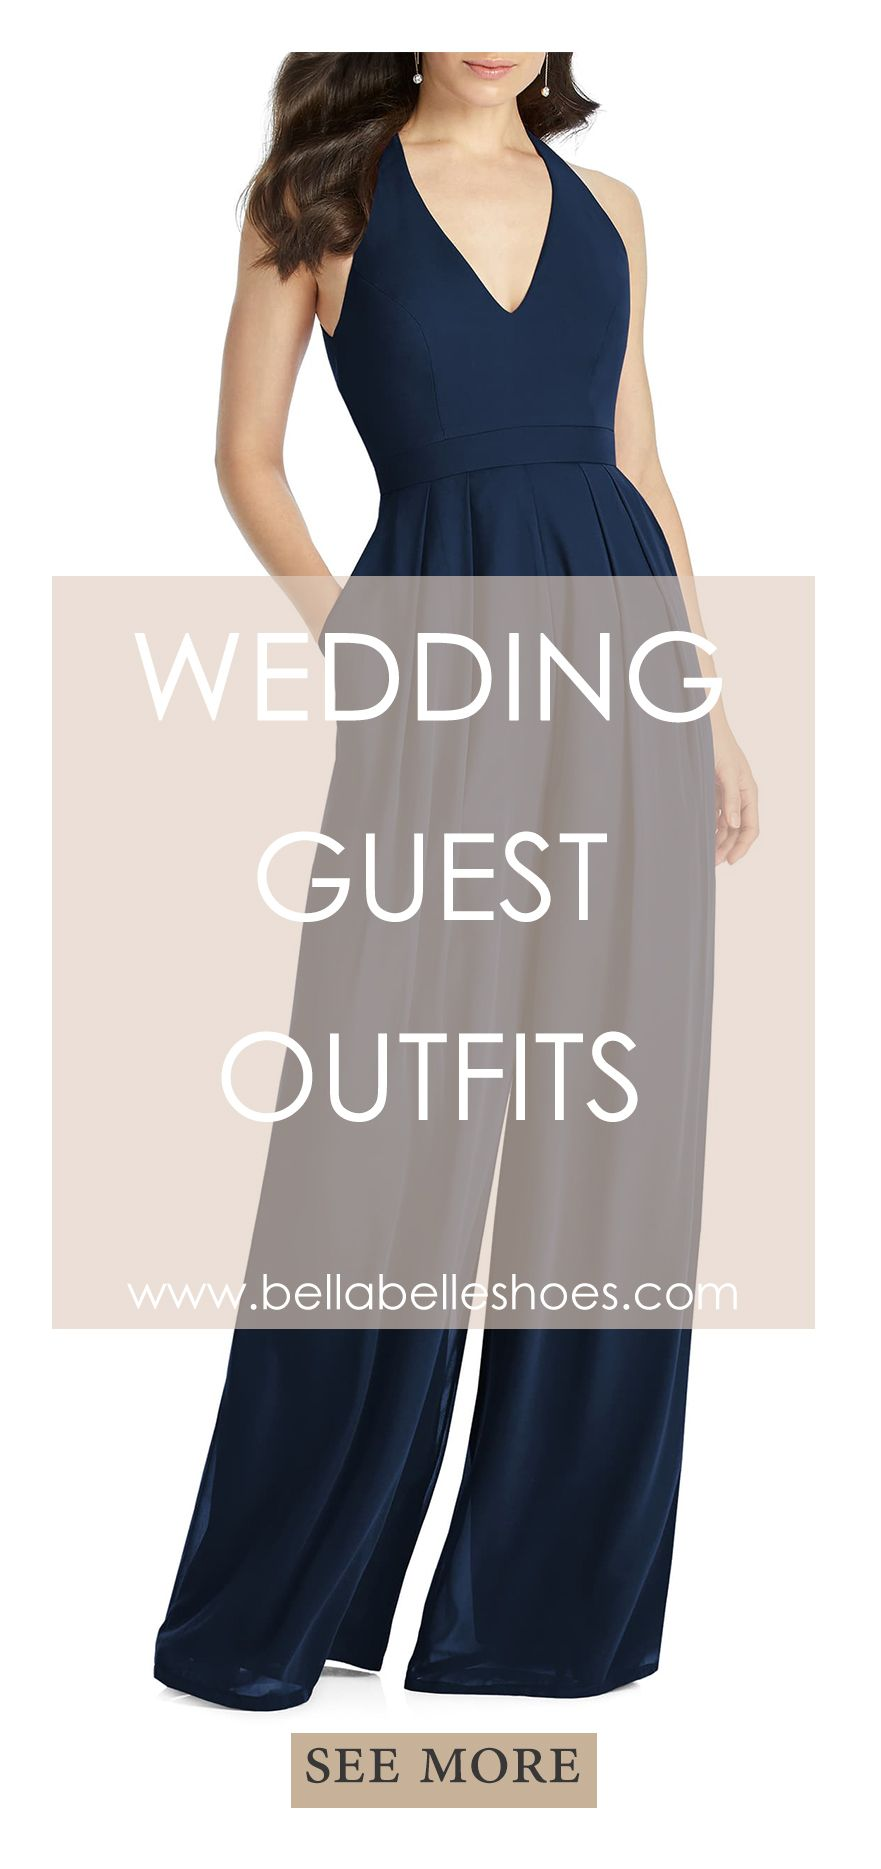 What To Wear For A Summer Wedding Wedding Guest Dress Summer Summer Wedding Outdoor Outdoor Wedding Guest Dresses [ 1869 x 881 Pixel ]